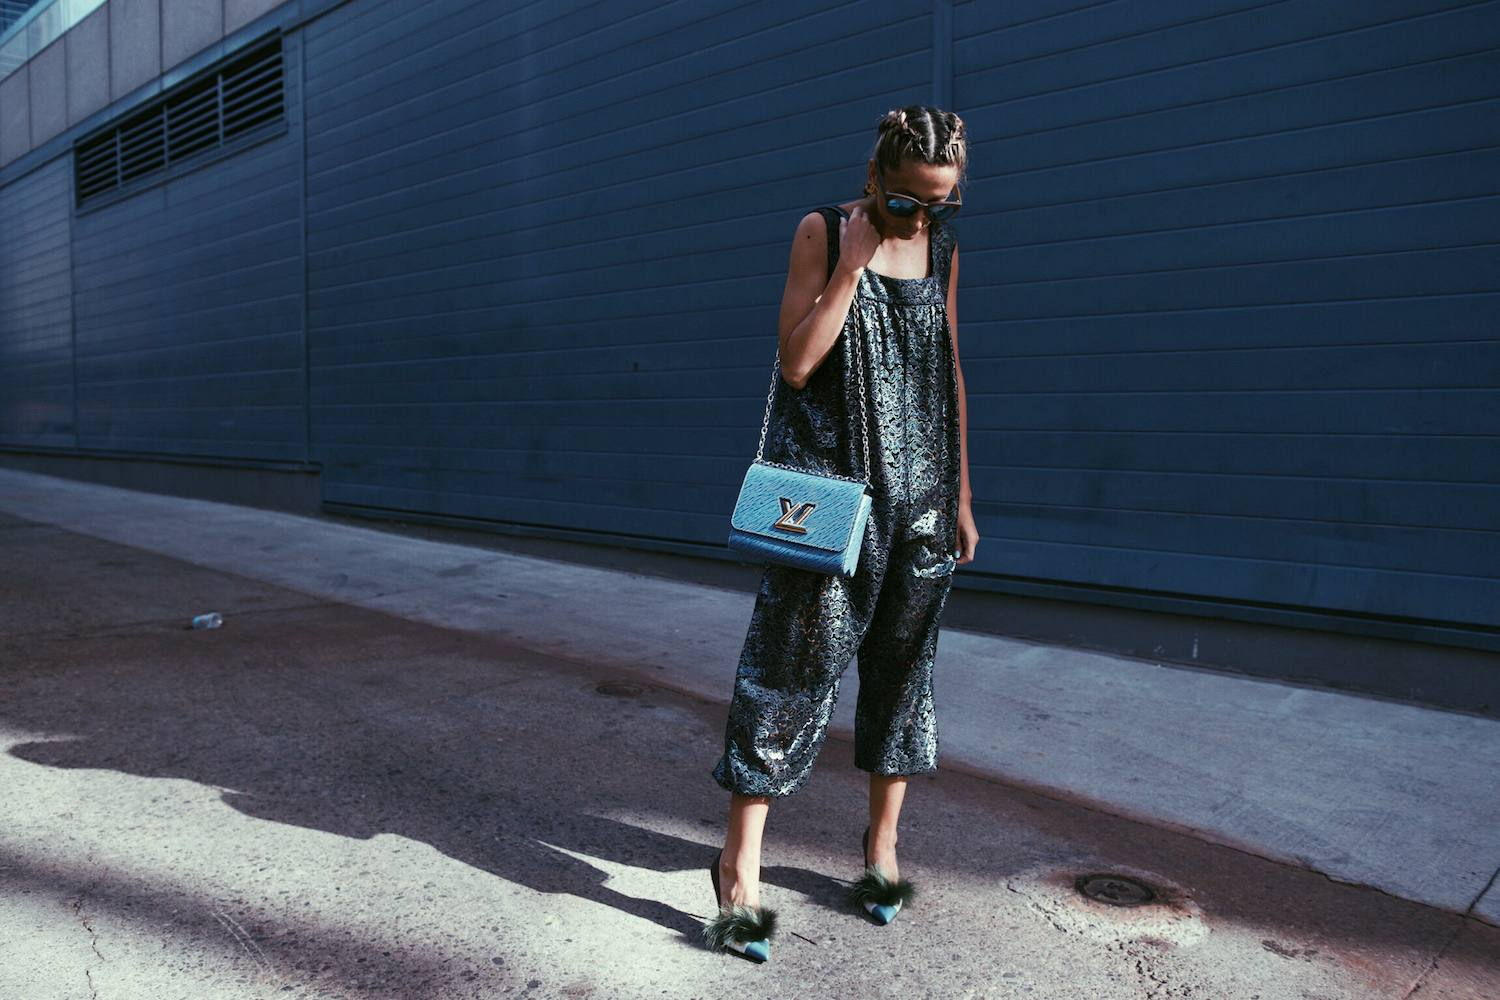 Chanel Jumpsuit, Fendi Bag Bug Shoes, Louis Vuitton Epi Leather Twist, Boxer Braids 10